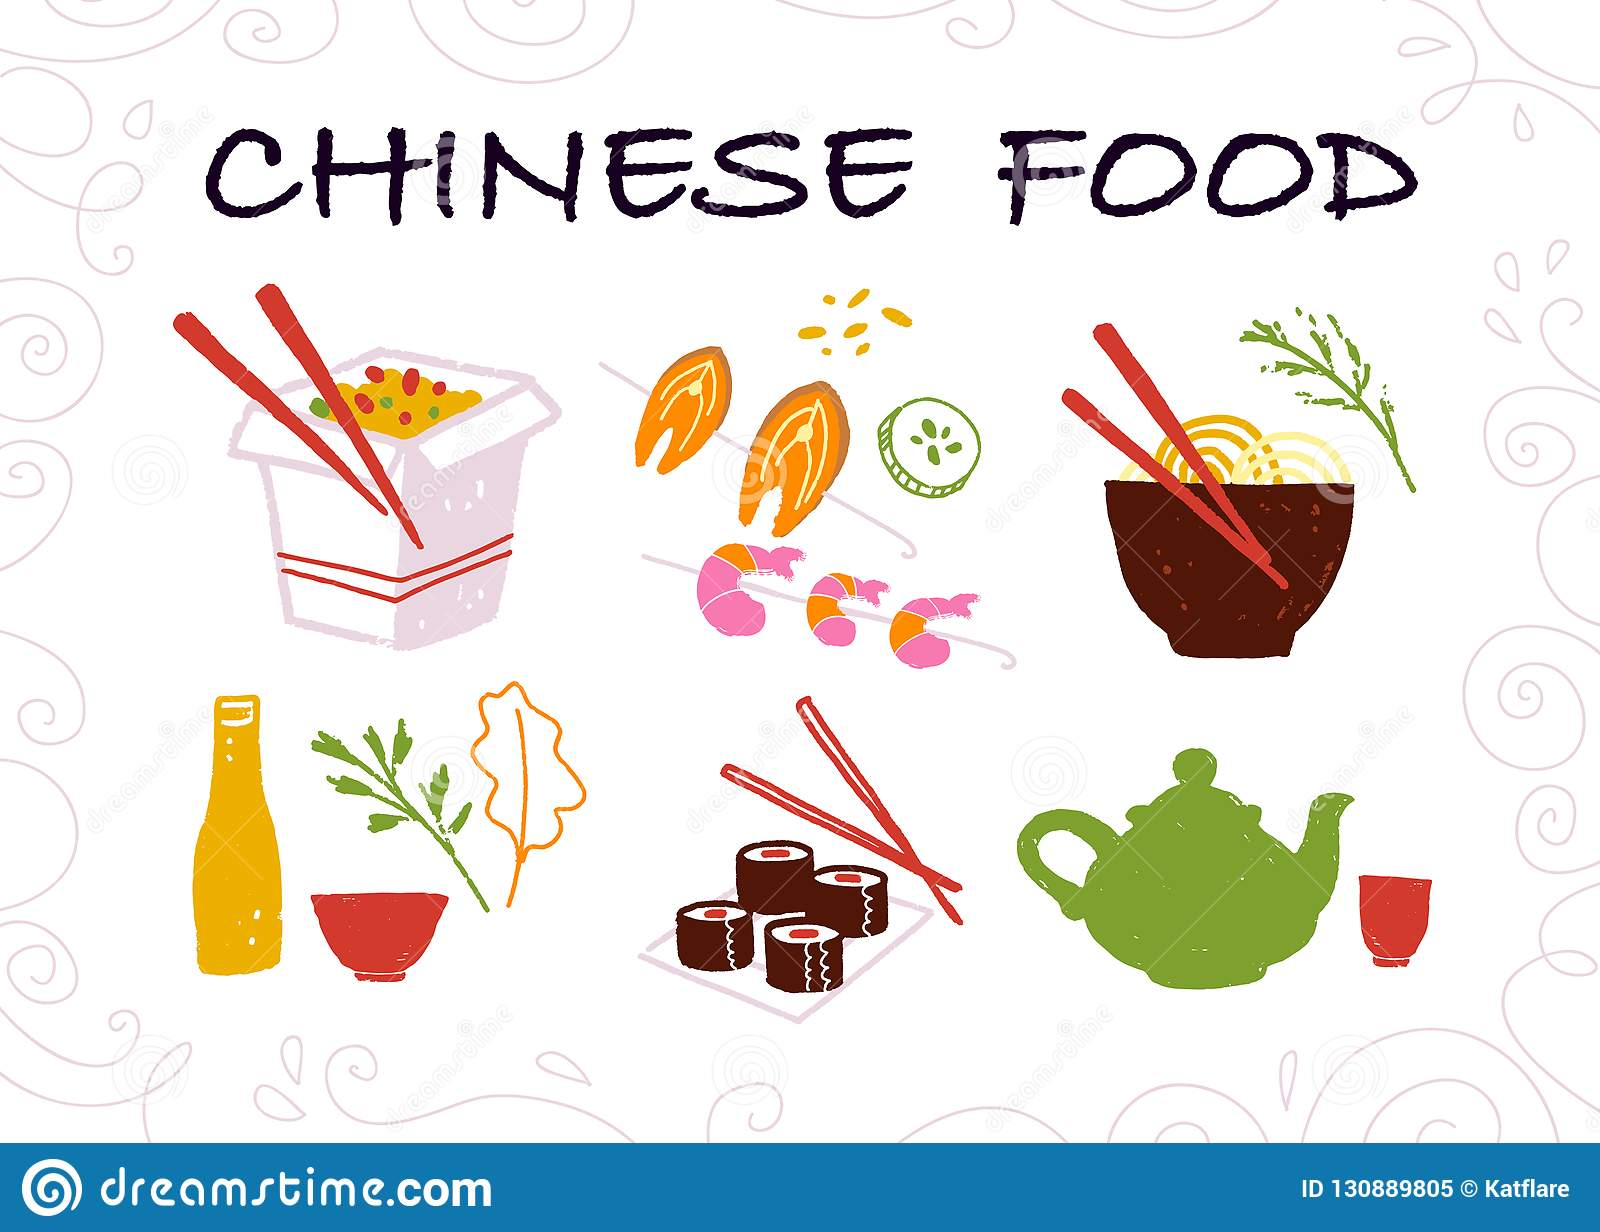 Vector Collection Of Hand Drawn Chinese Food Items Isolated On White Background Stock Vector Illustration Of Delicious Design 130889805